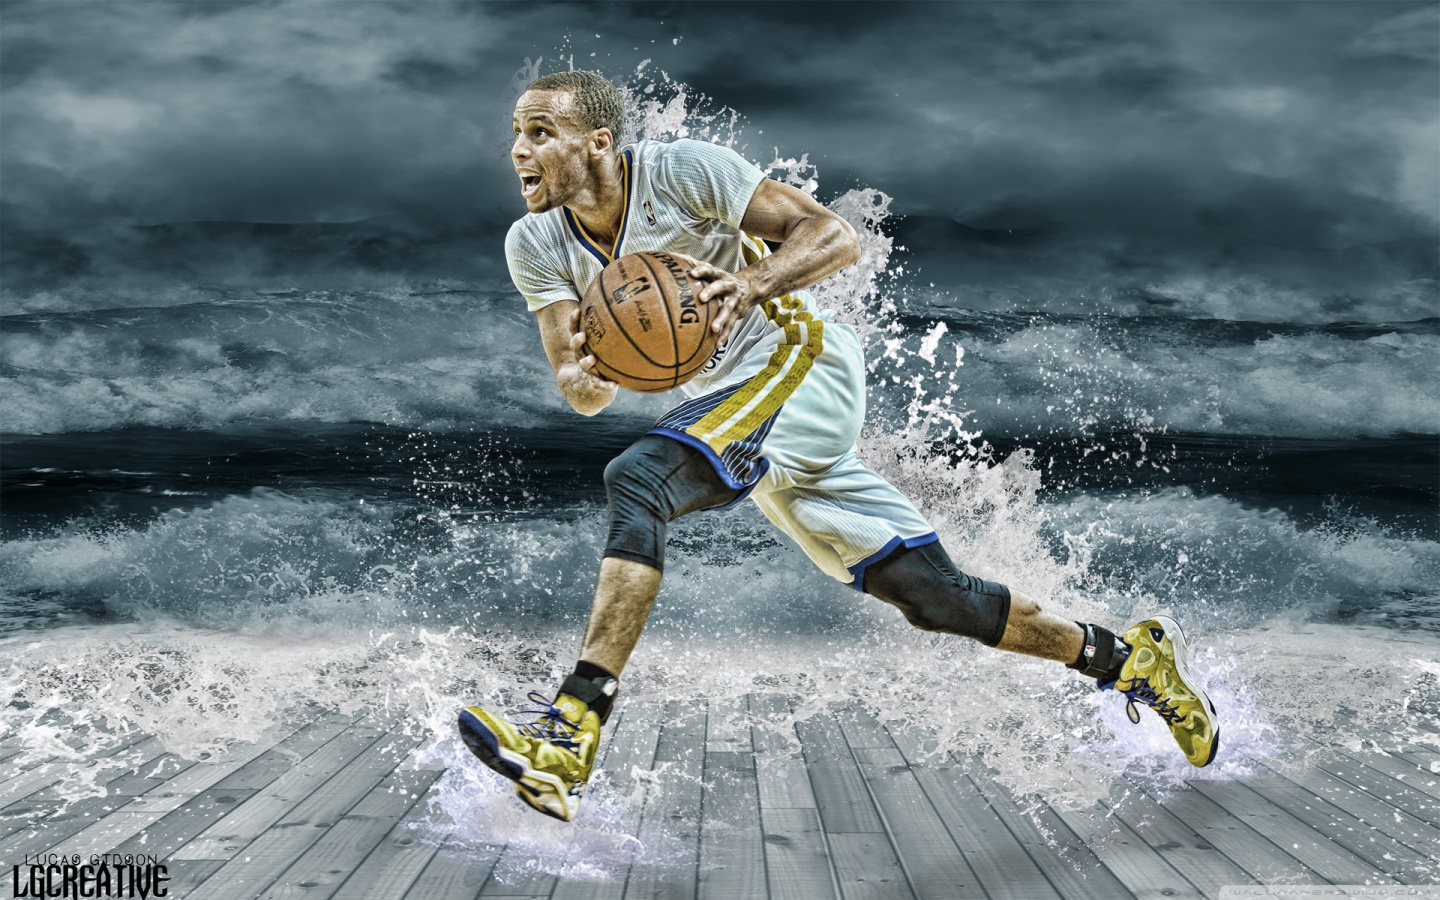 FunMozar Stephen Curry Splash Wallpaper 1440x900